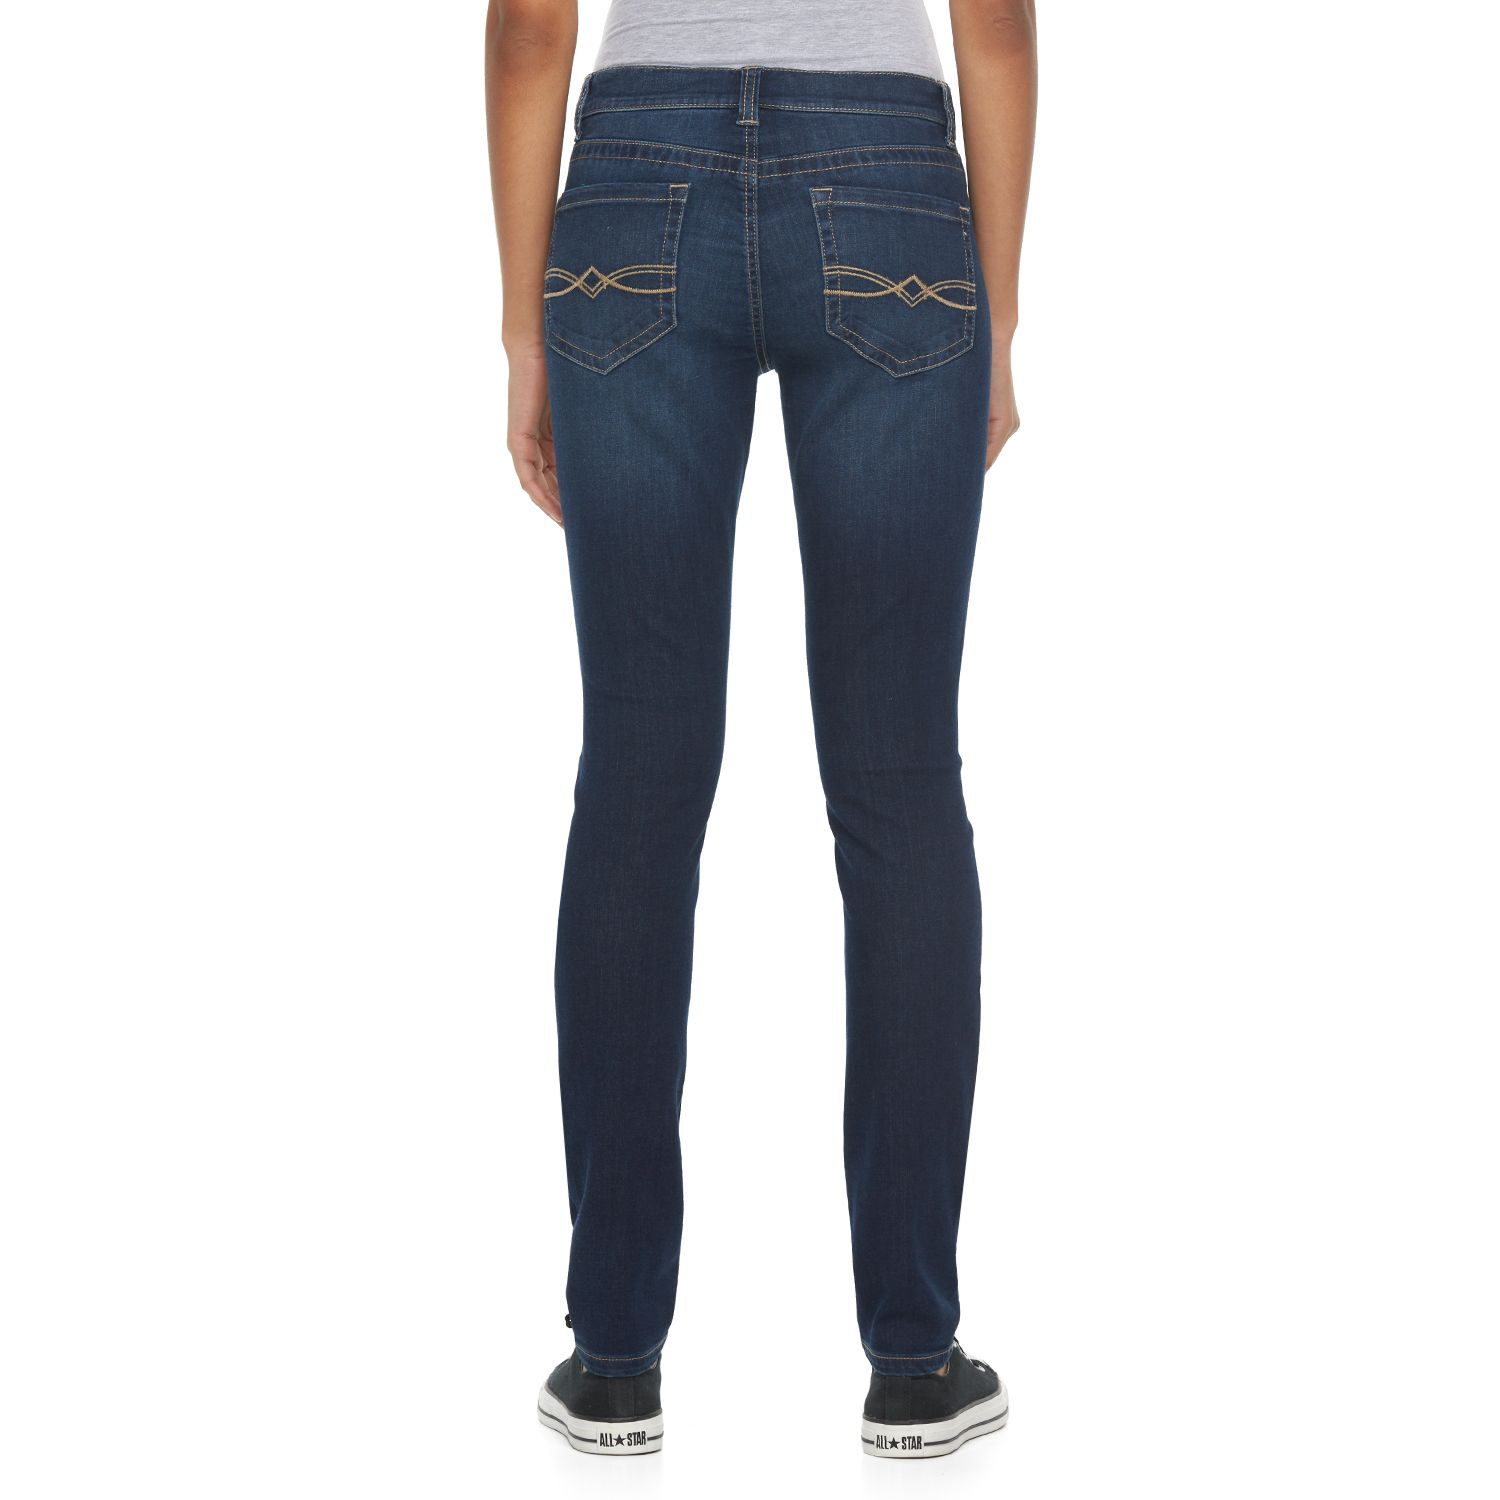 b5e63442071 Juniors Black Mudd Skinny Jeans - Bottoms